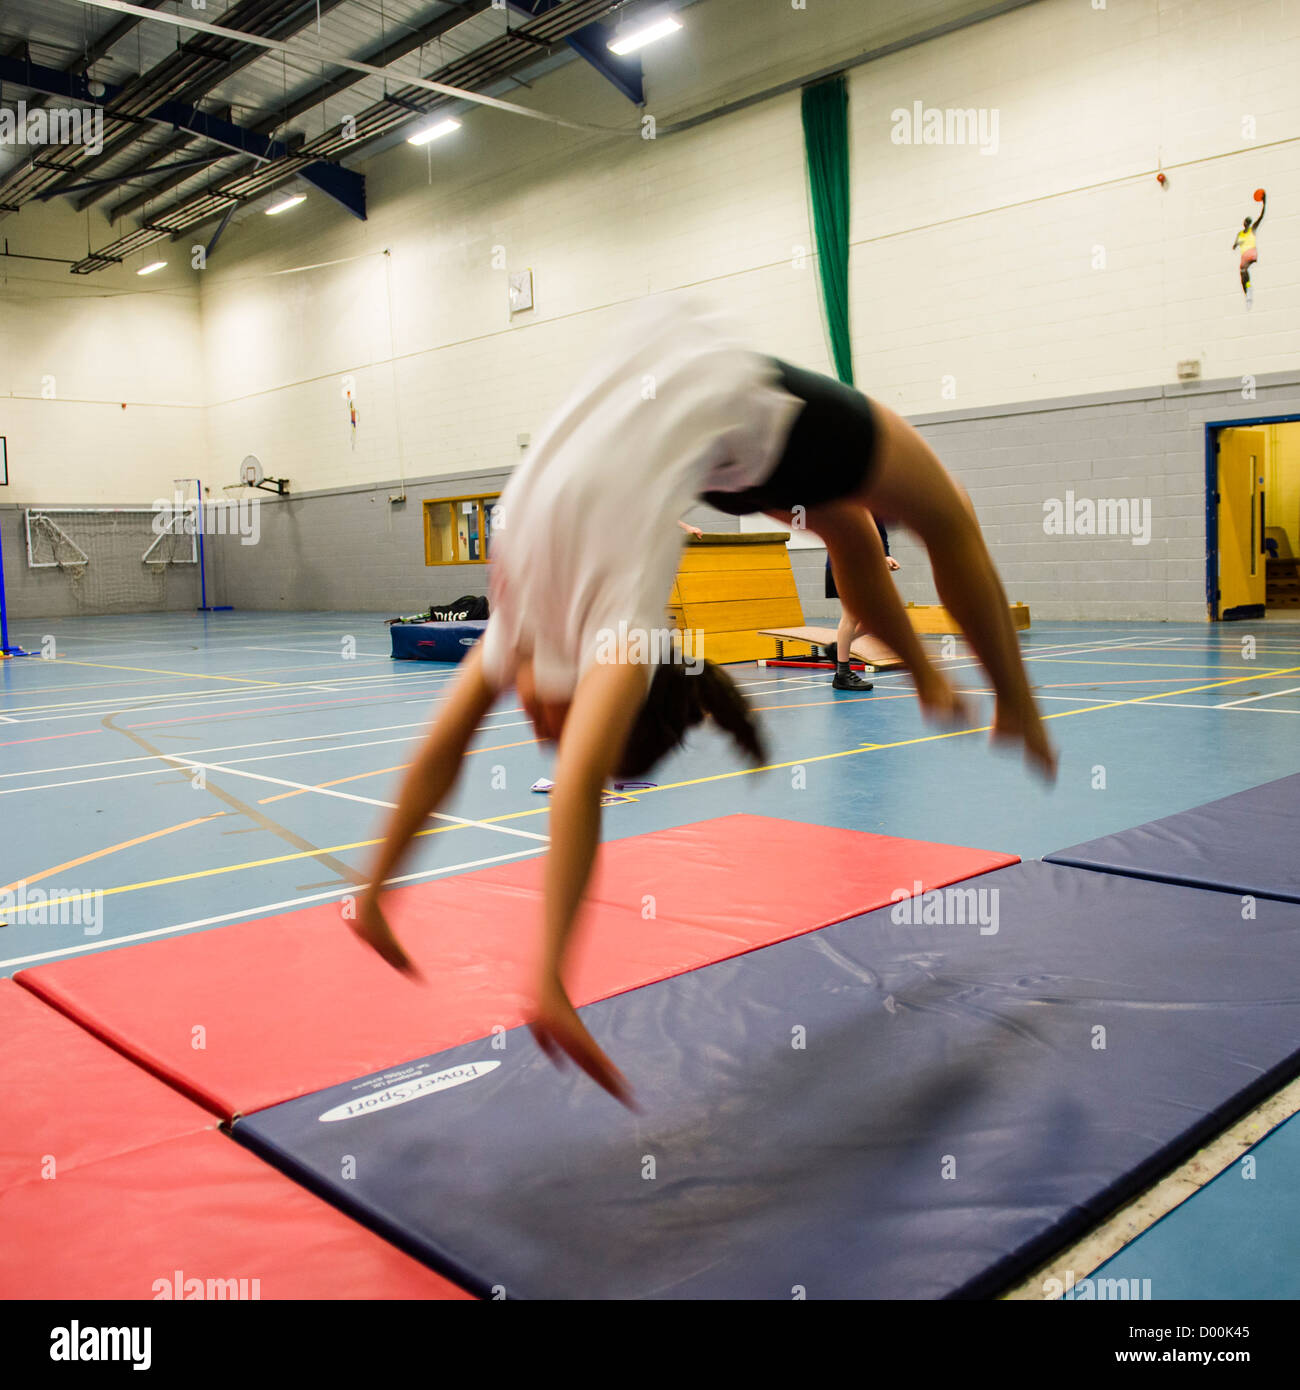 A girl in a Physical education class in the gymnasium at a secondary comprehensive school, Wales UK Stock Photo